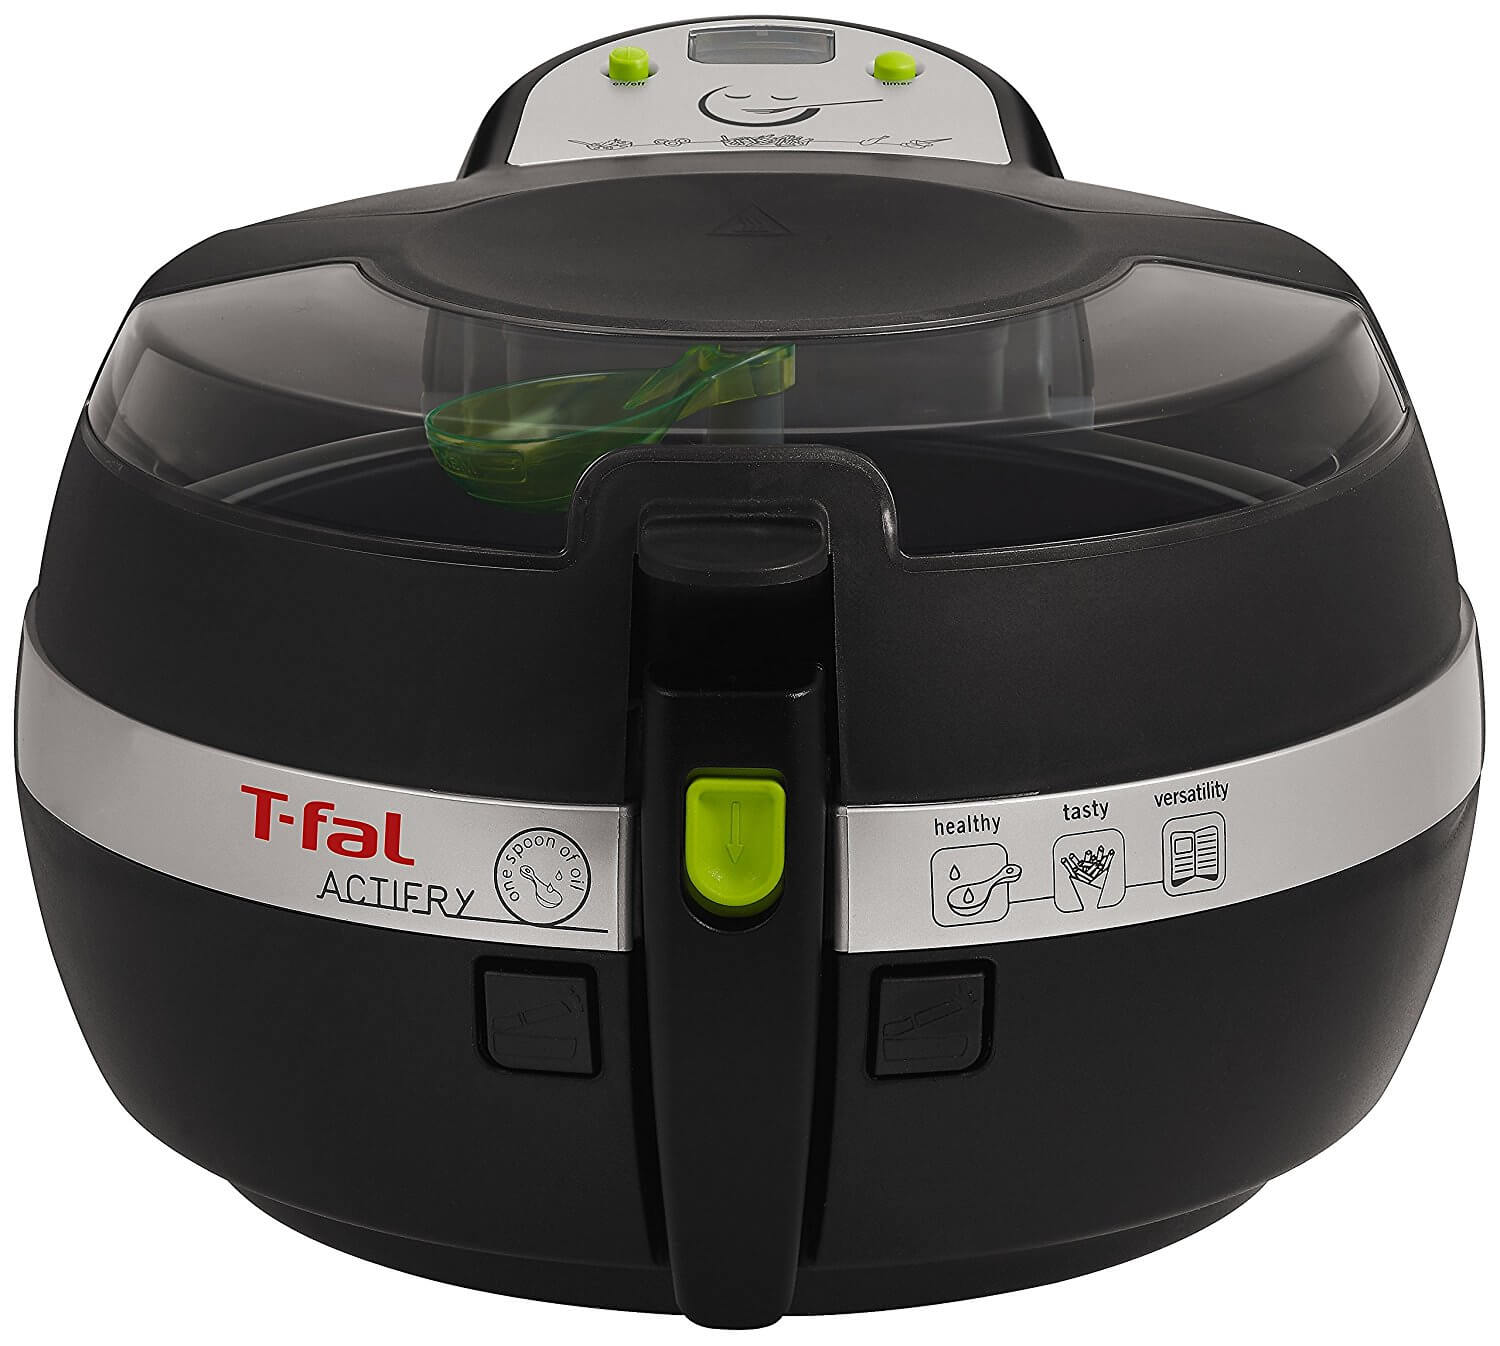 T-fal FZ7002 ActiFry